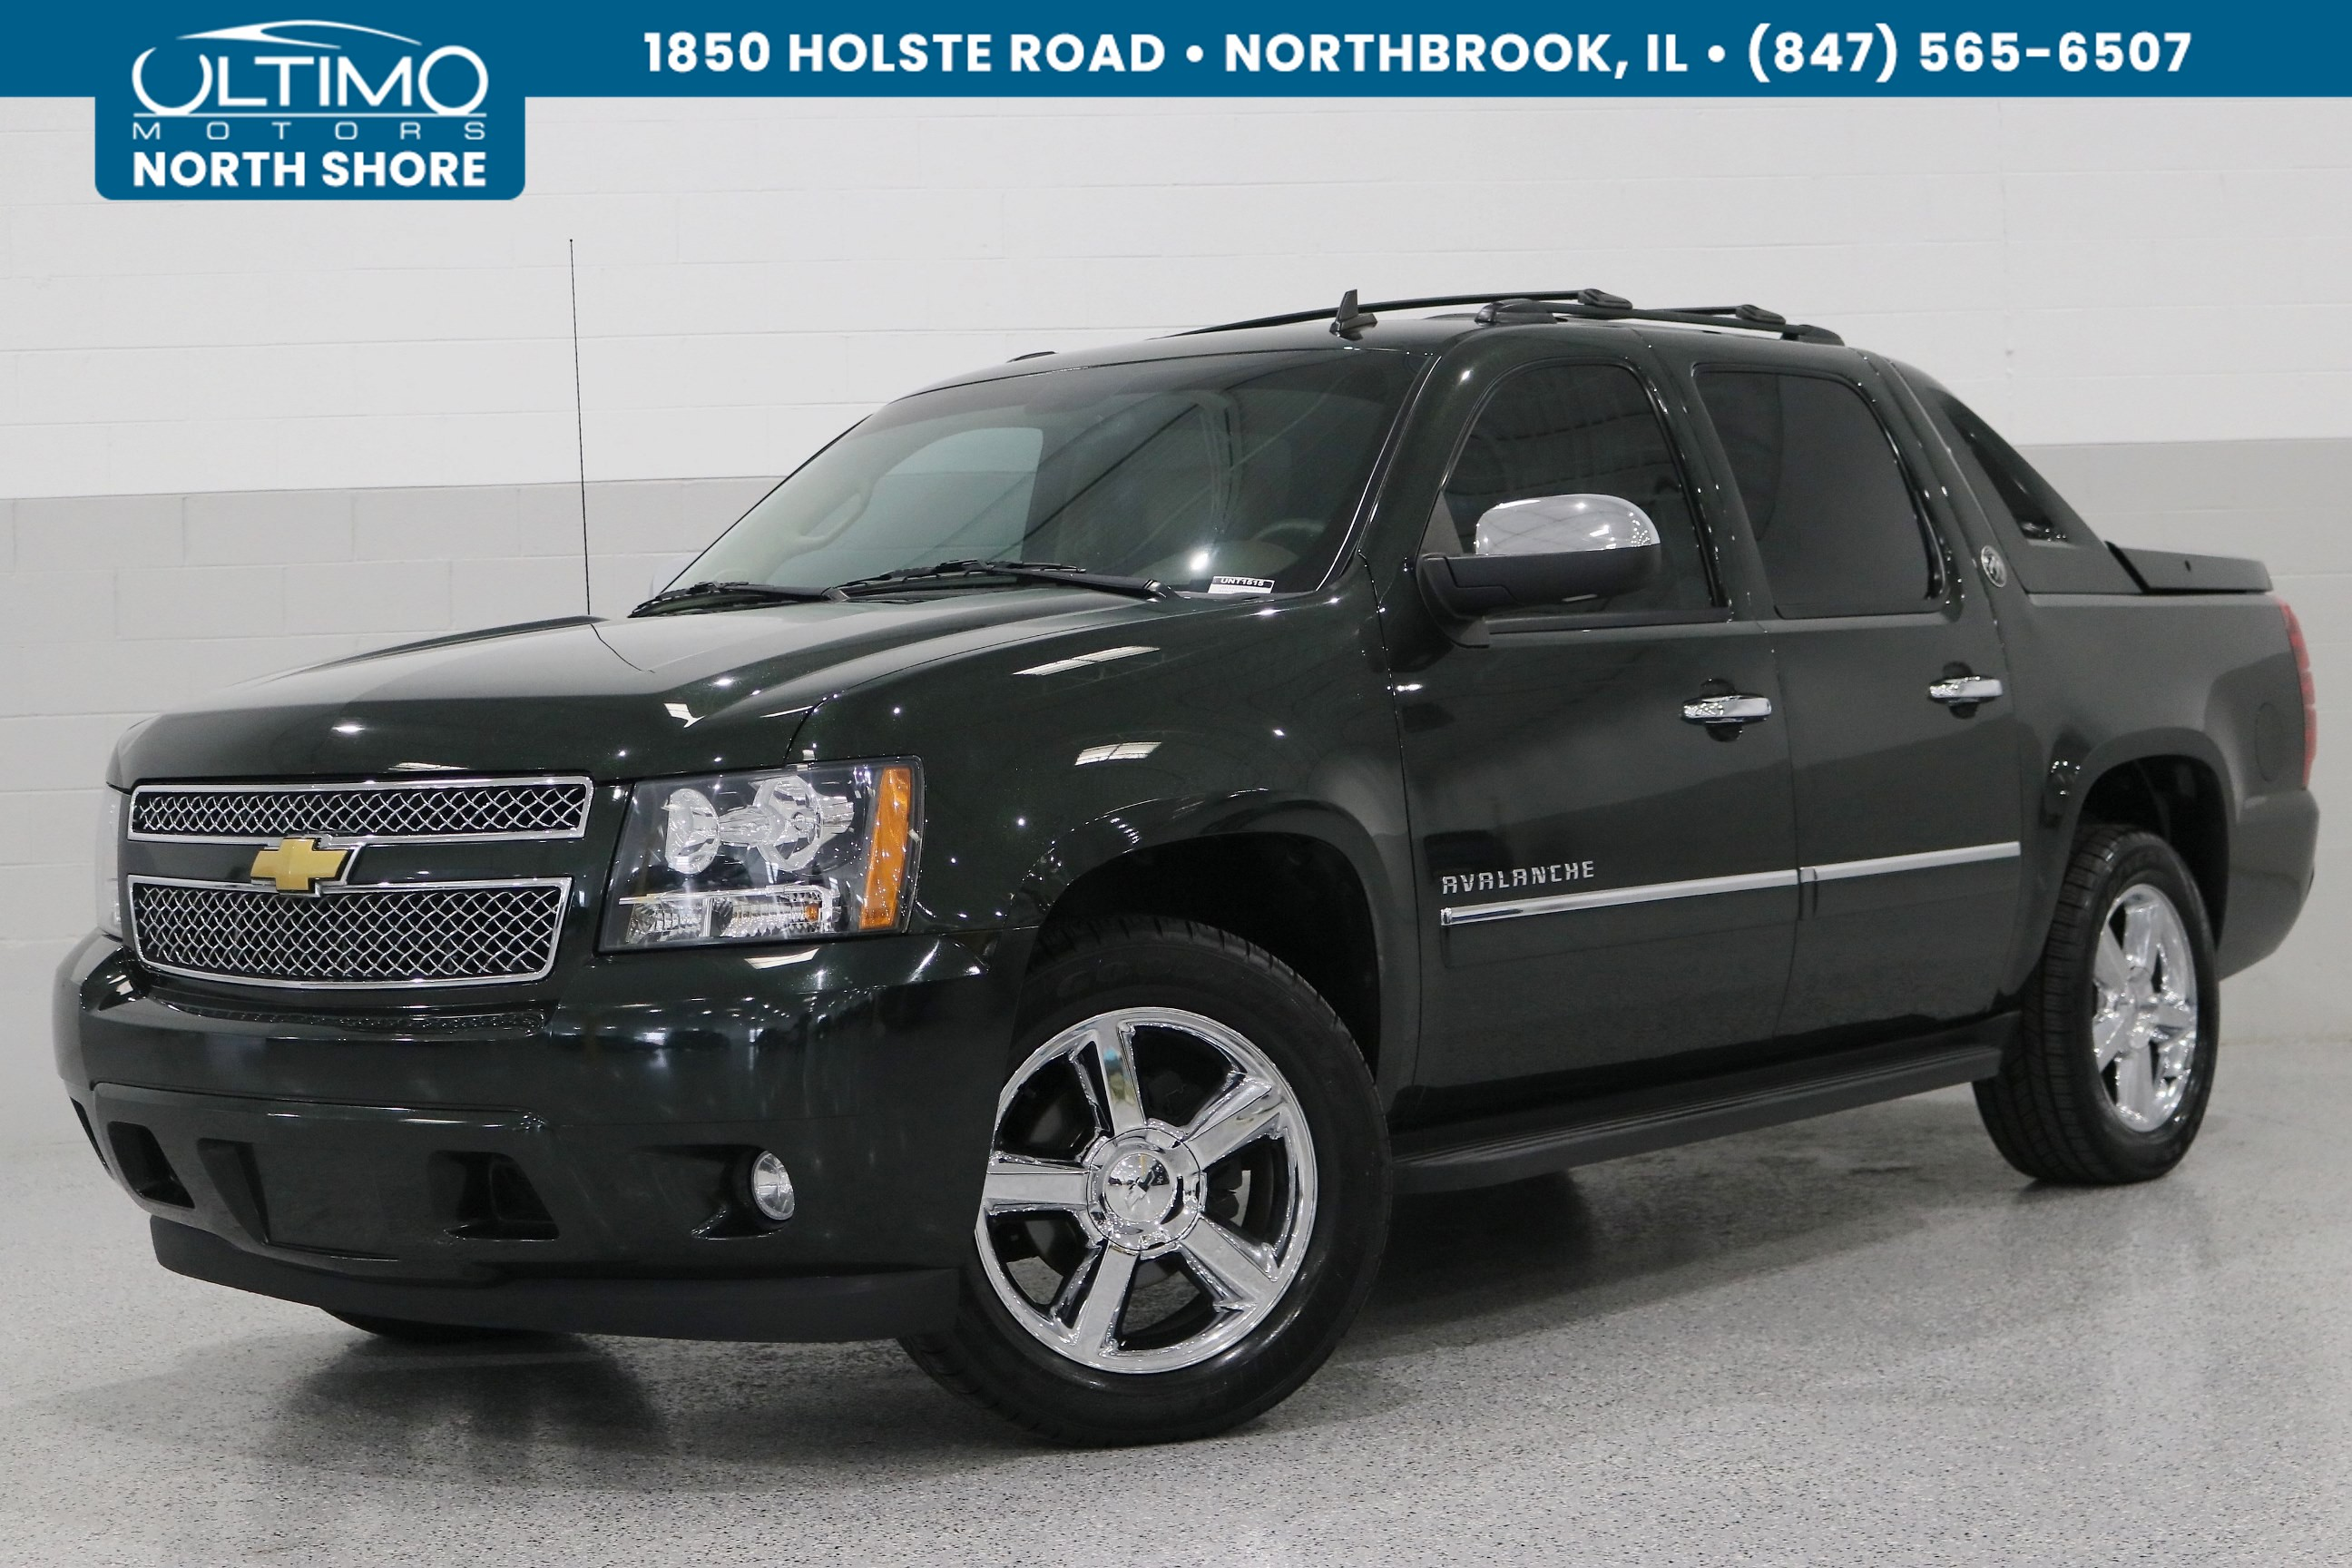 Pre-Owned 2013 Chevrolet Avalanche LTZ, Black Diamond, Sunroof, Heavy Duty Package.